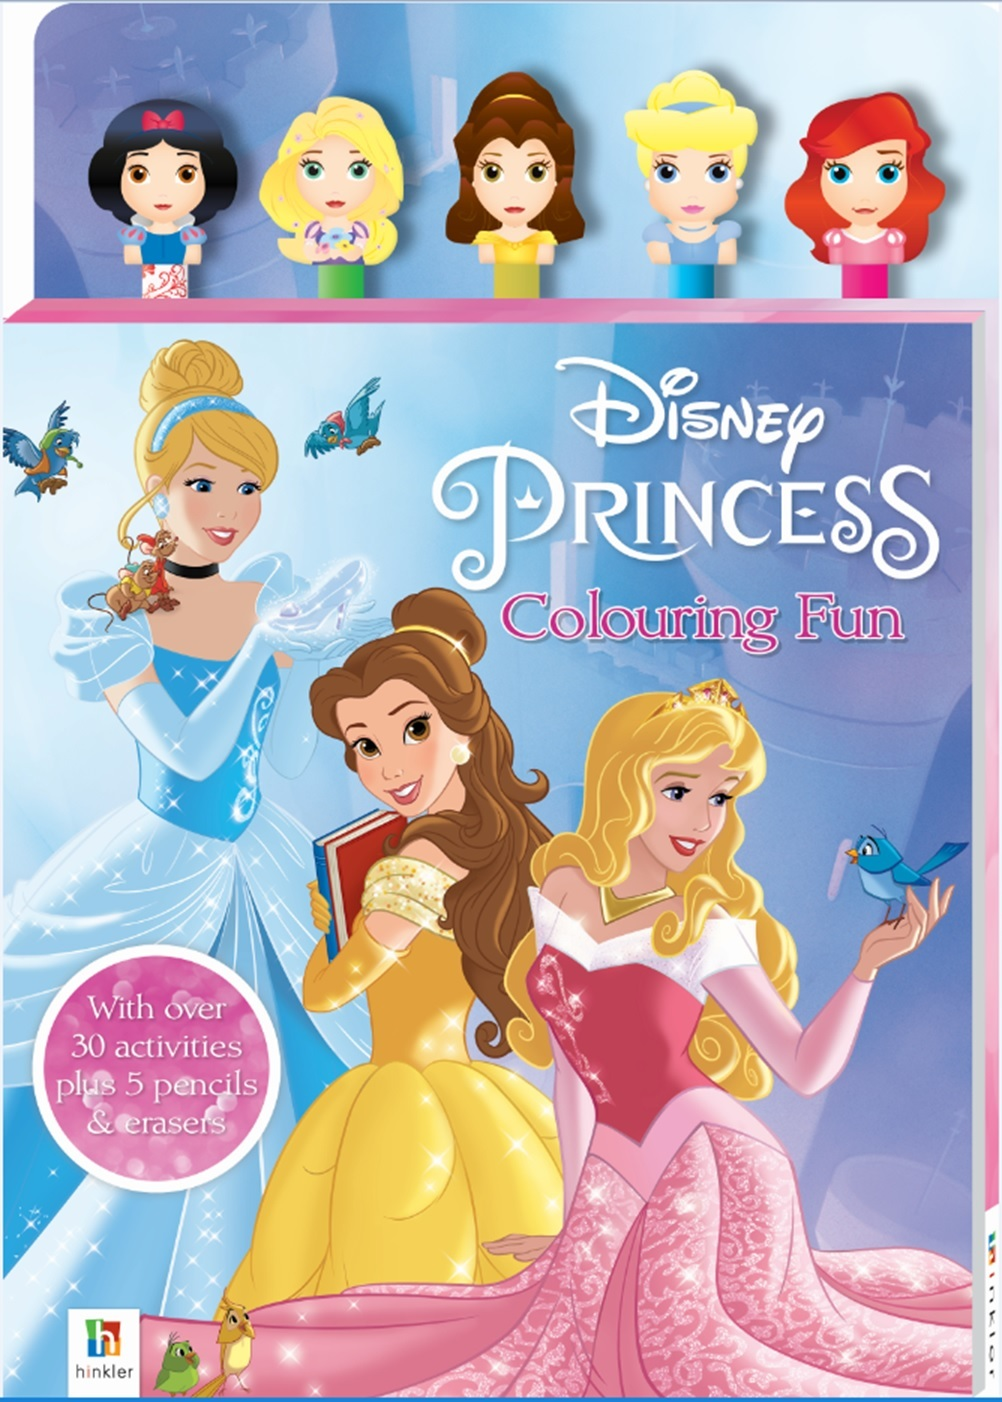 Disney Princess: Pencil & Eraser - 5-Piece Set image